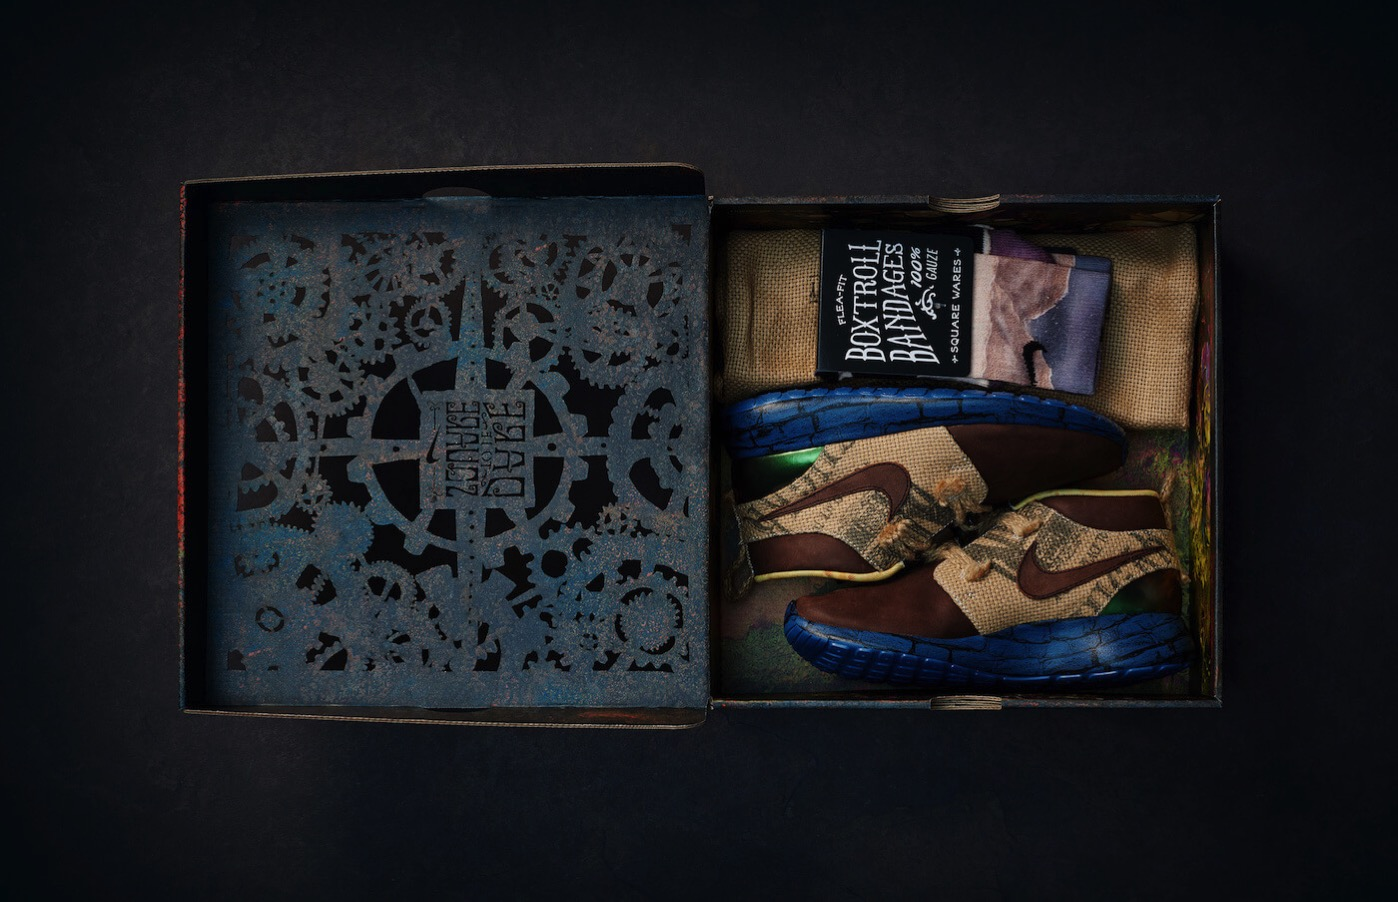 Laika nike shoes the boxtrolls 1